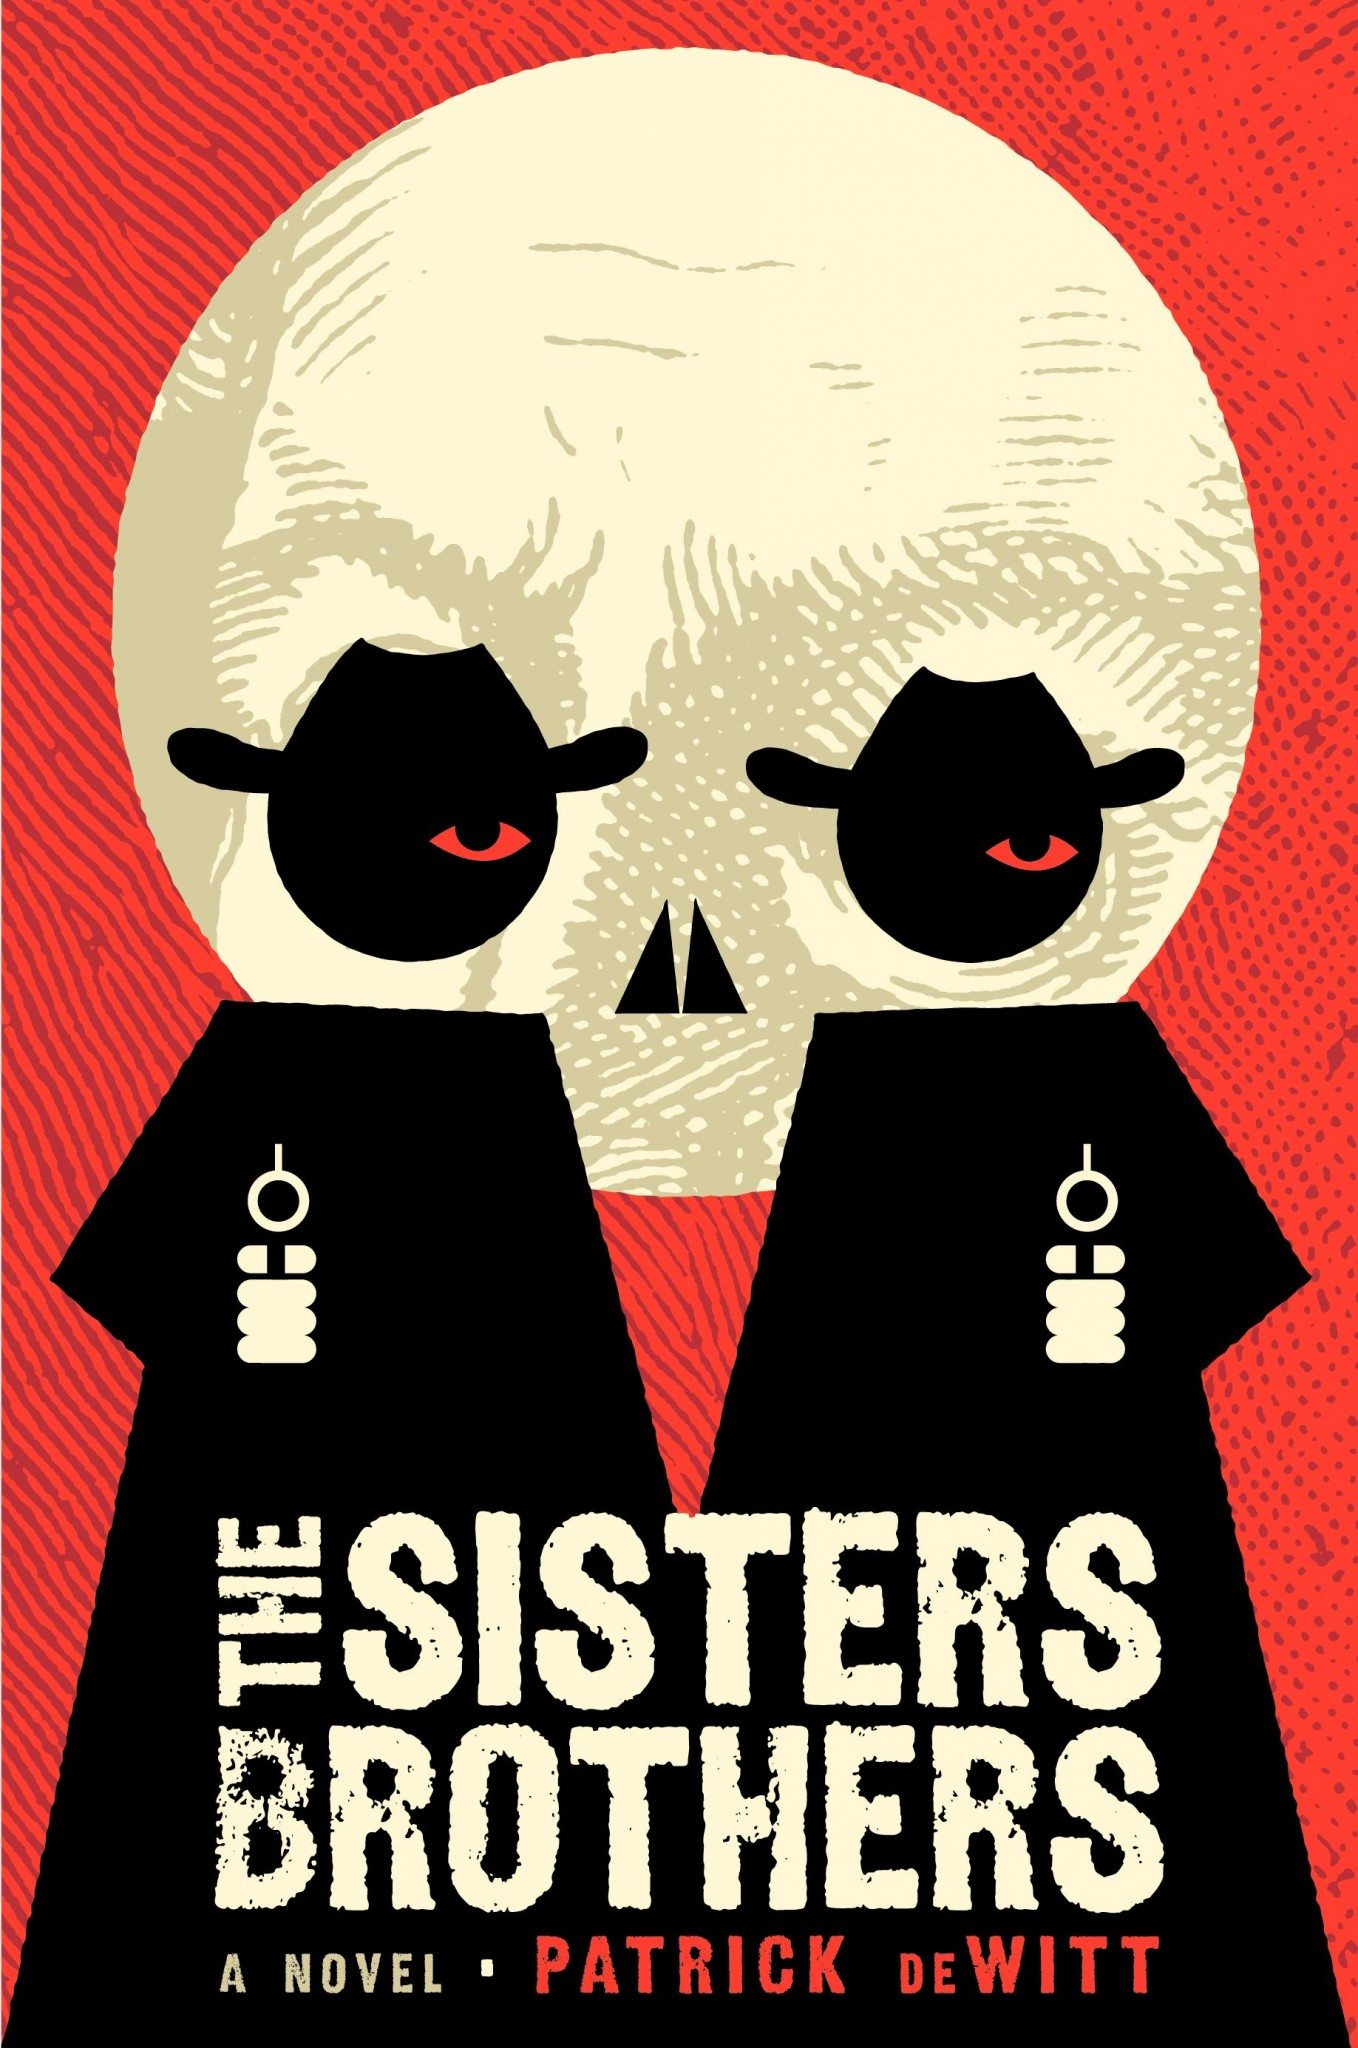 2011 Patrick deWitt; Melanie Little, ed., The Sisters Brothers (House of Anansi Press)